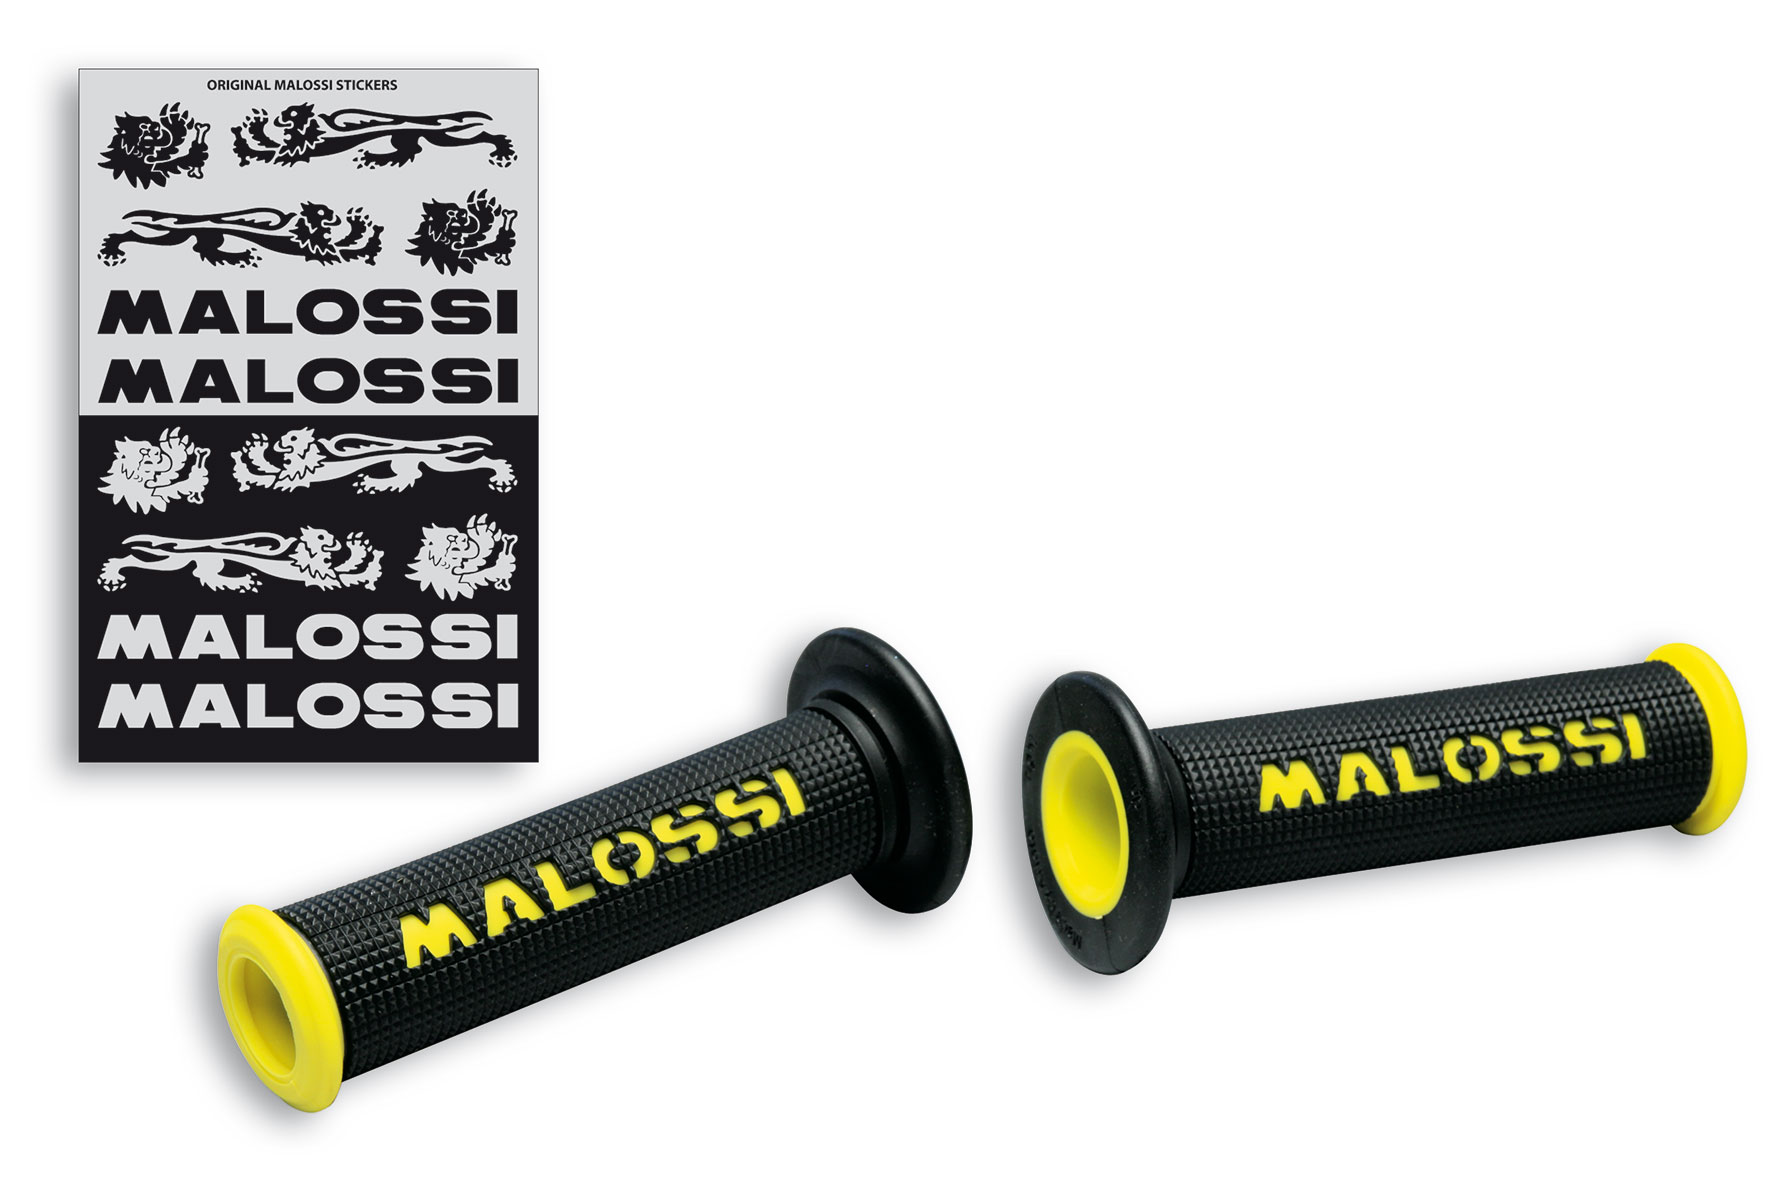 2 BLACK GRIPS with YELLOW Malossi logo (mod. without side fastening)